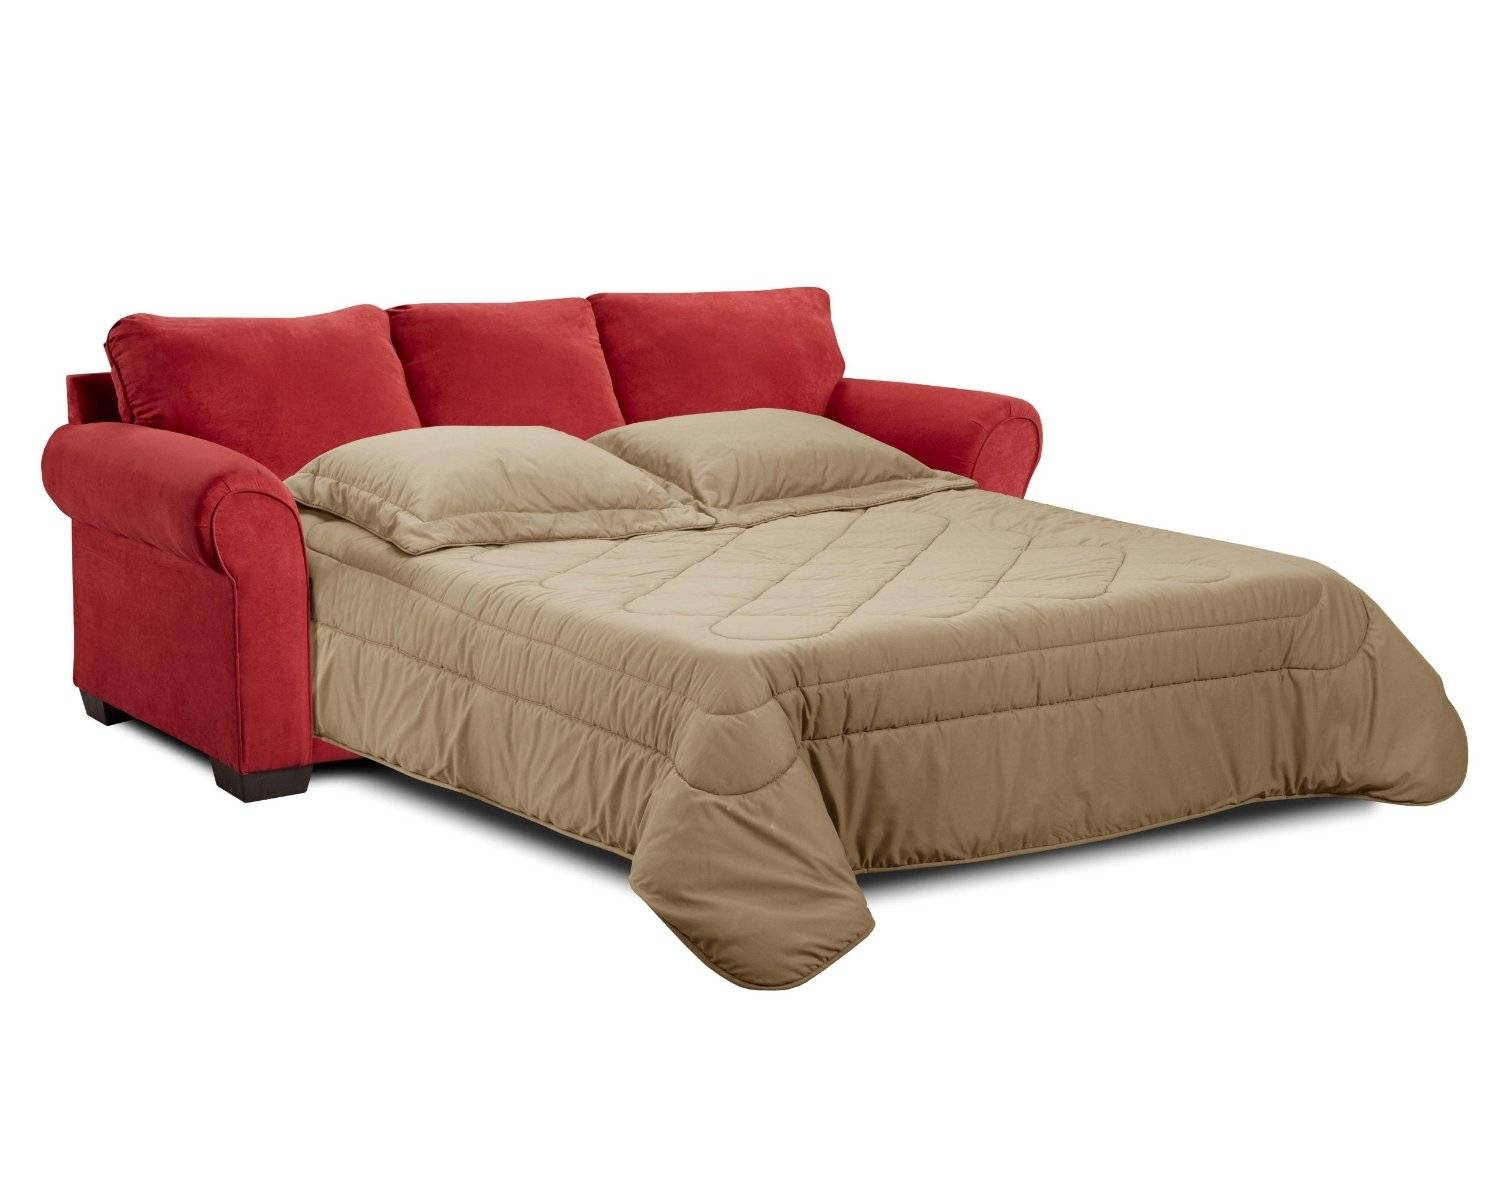 Furniture Home: Sofa Bed Queen Modern Elegant 2017. Designer with Full Size Sofa Beds (Image 7 of 15)